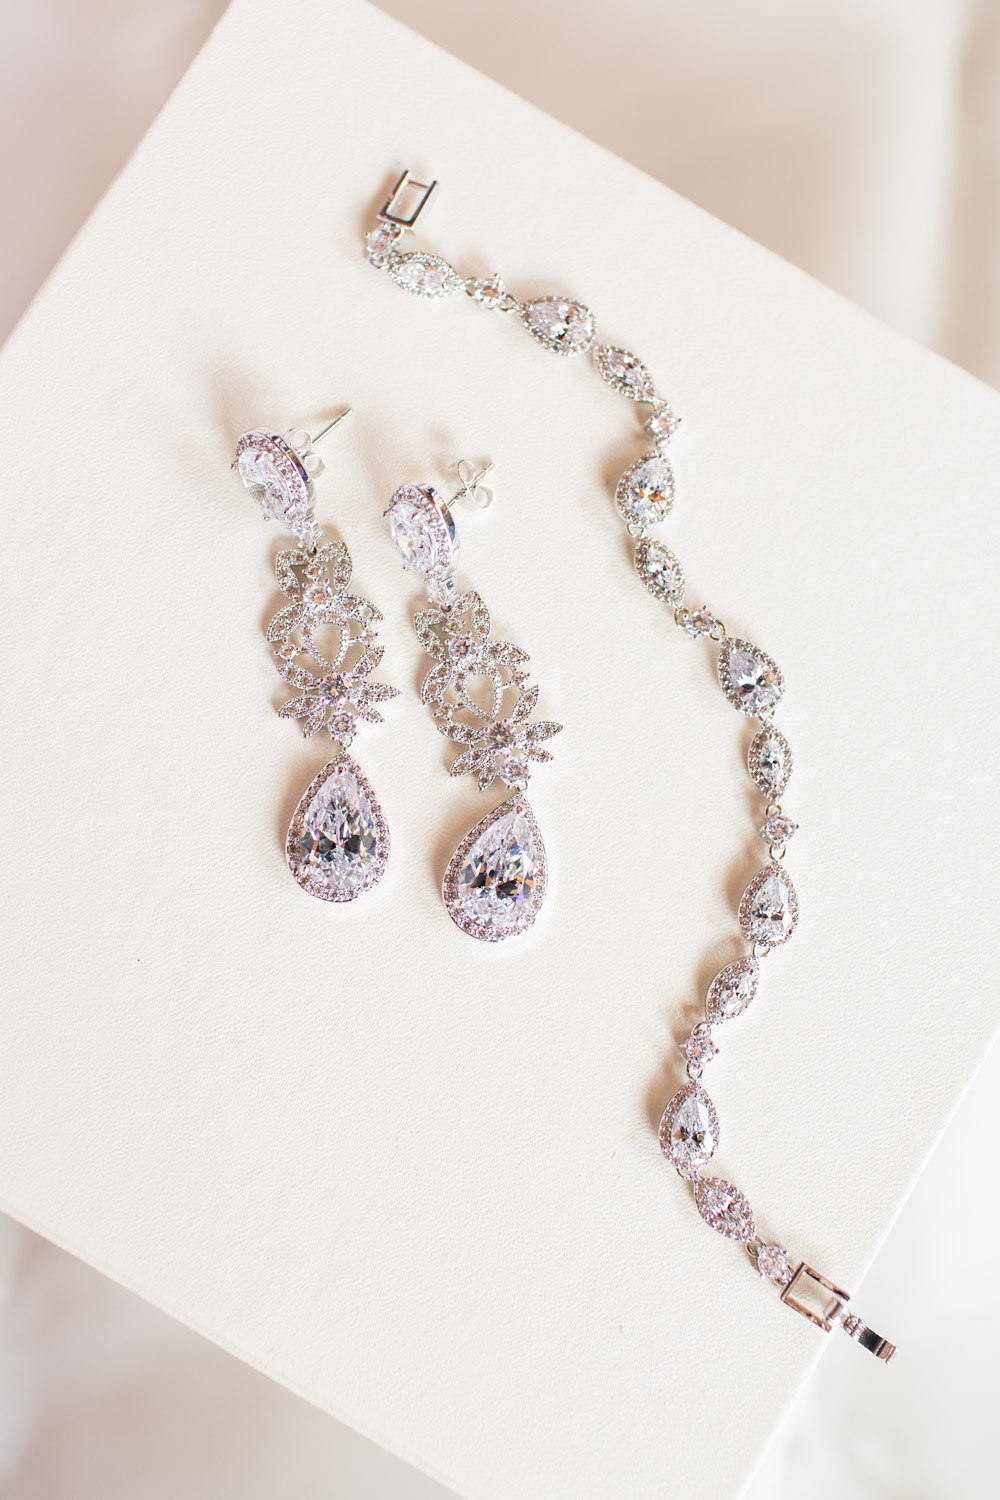 Diamond luxury earrings for a bride on her wedding day and a diamond bracelet, Cavin Elizabeth Photography